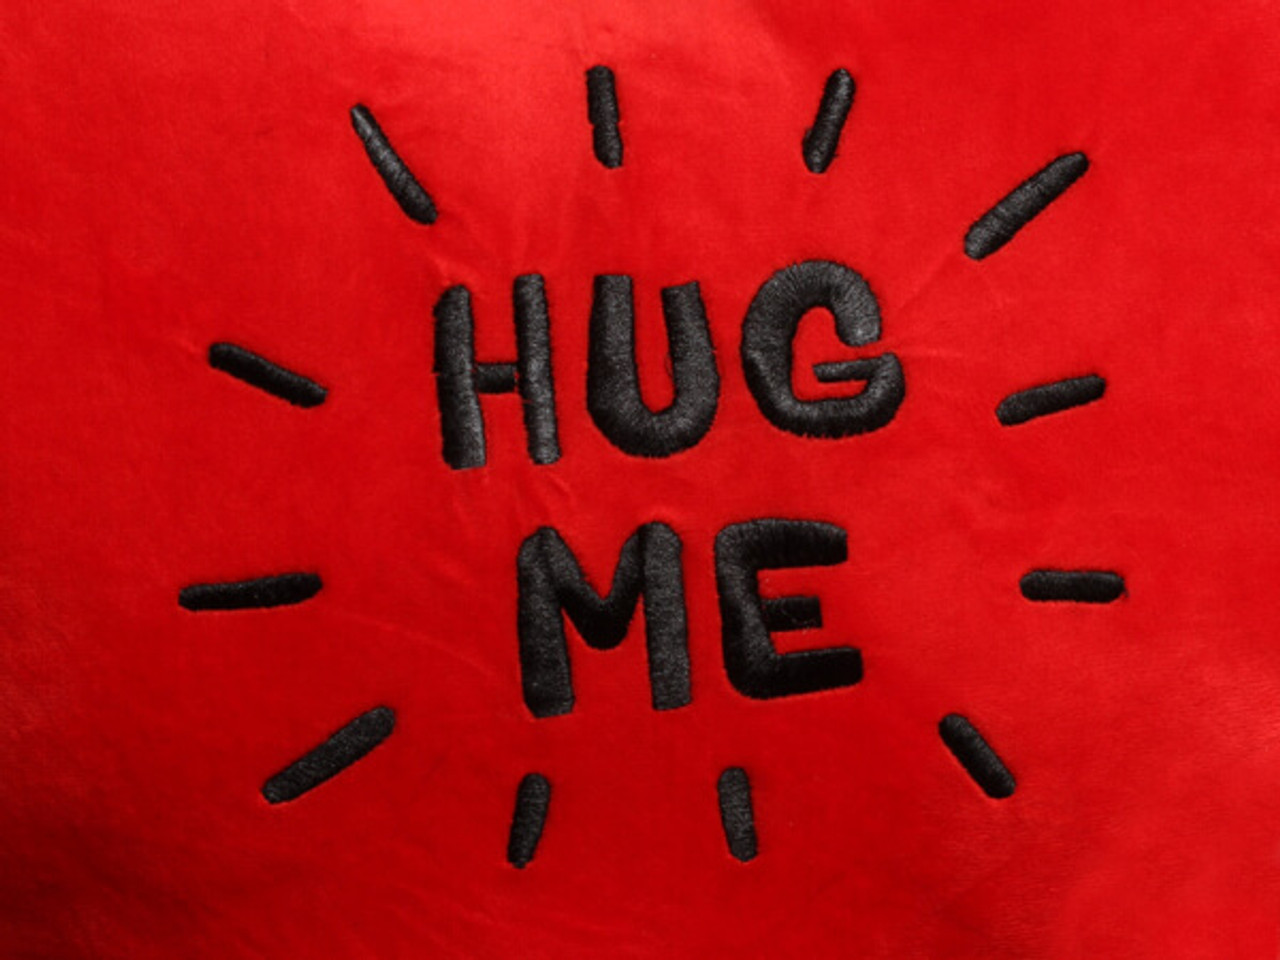 Red heart pillow black embroidery text close-up 'Hug Me'